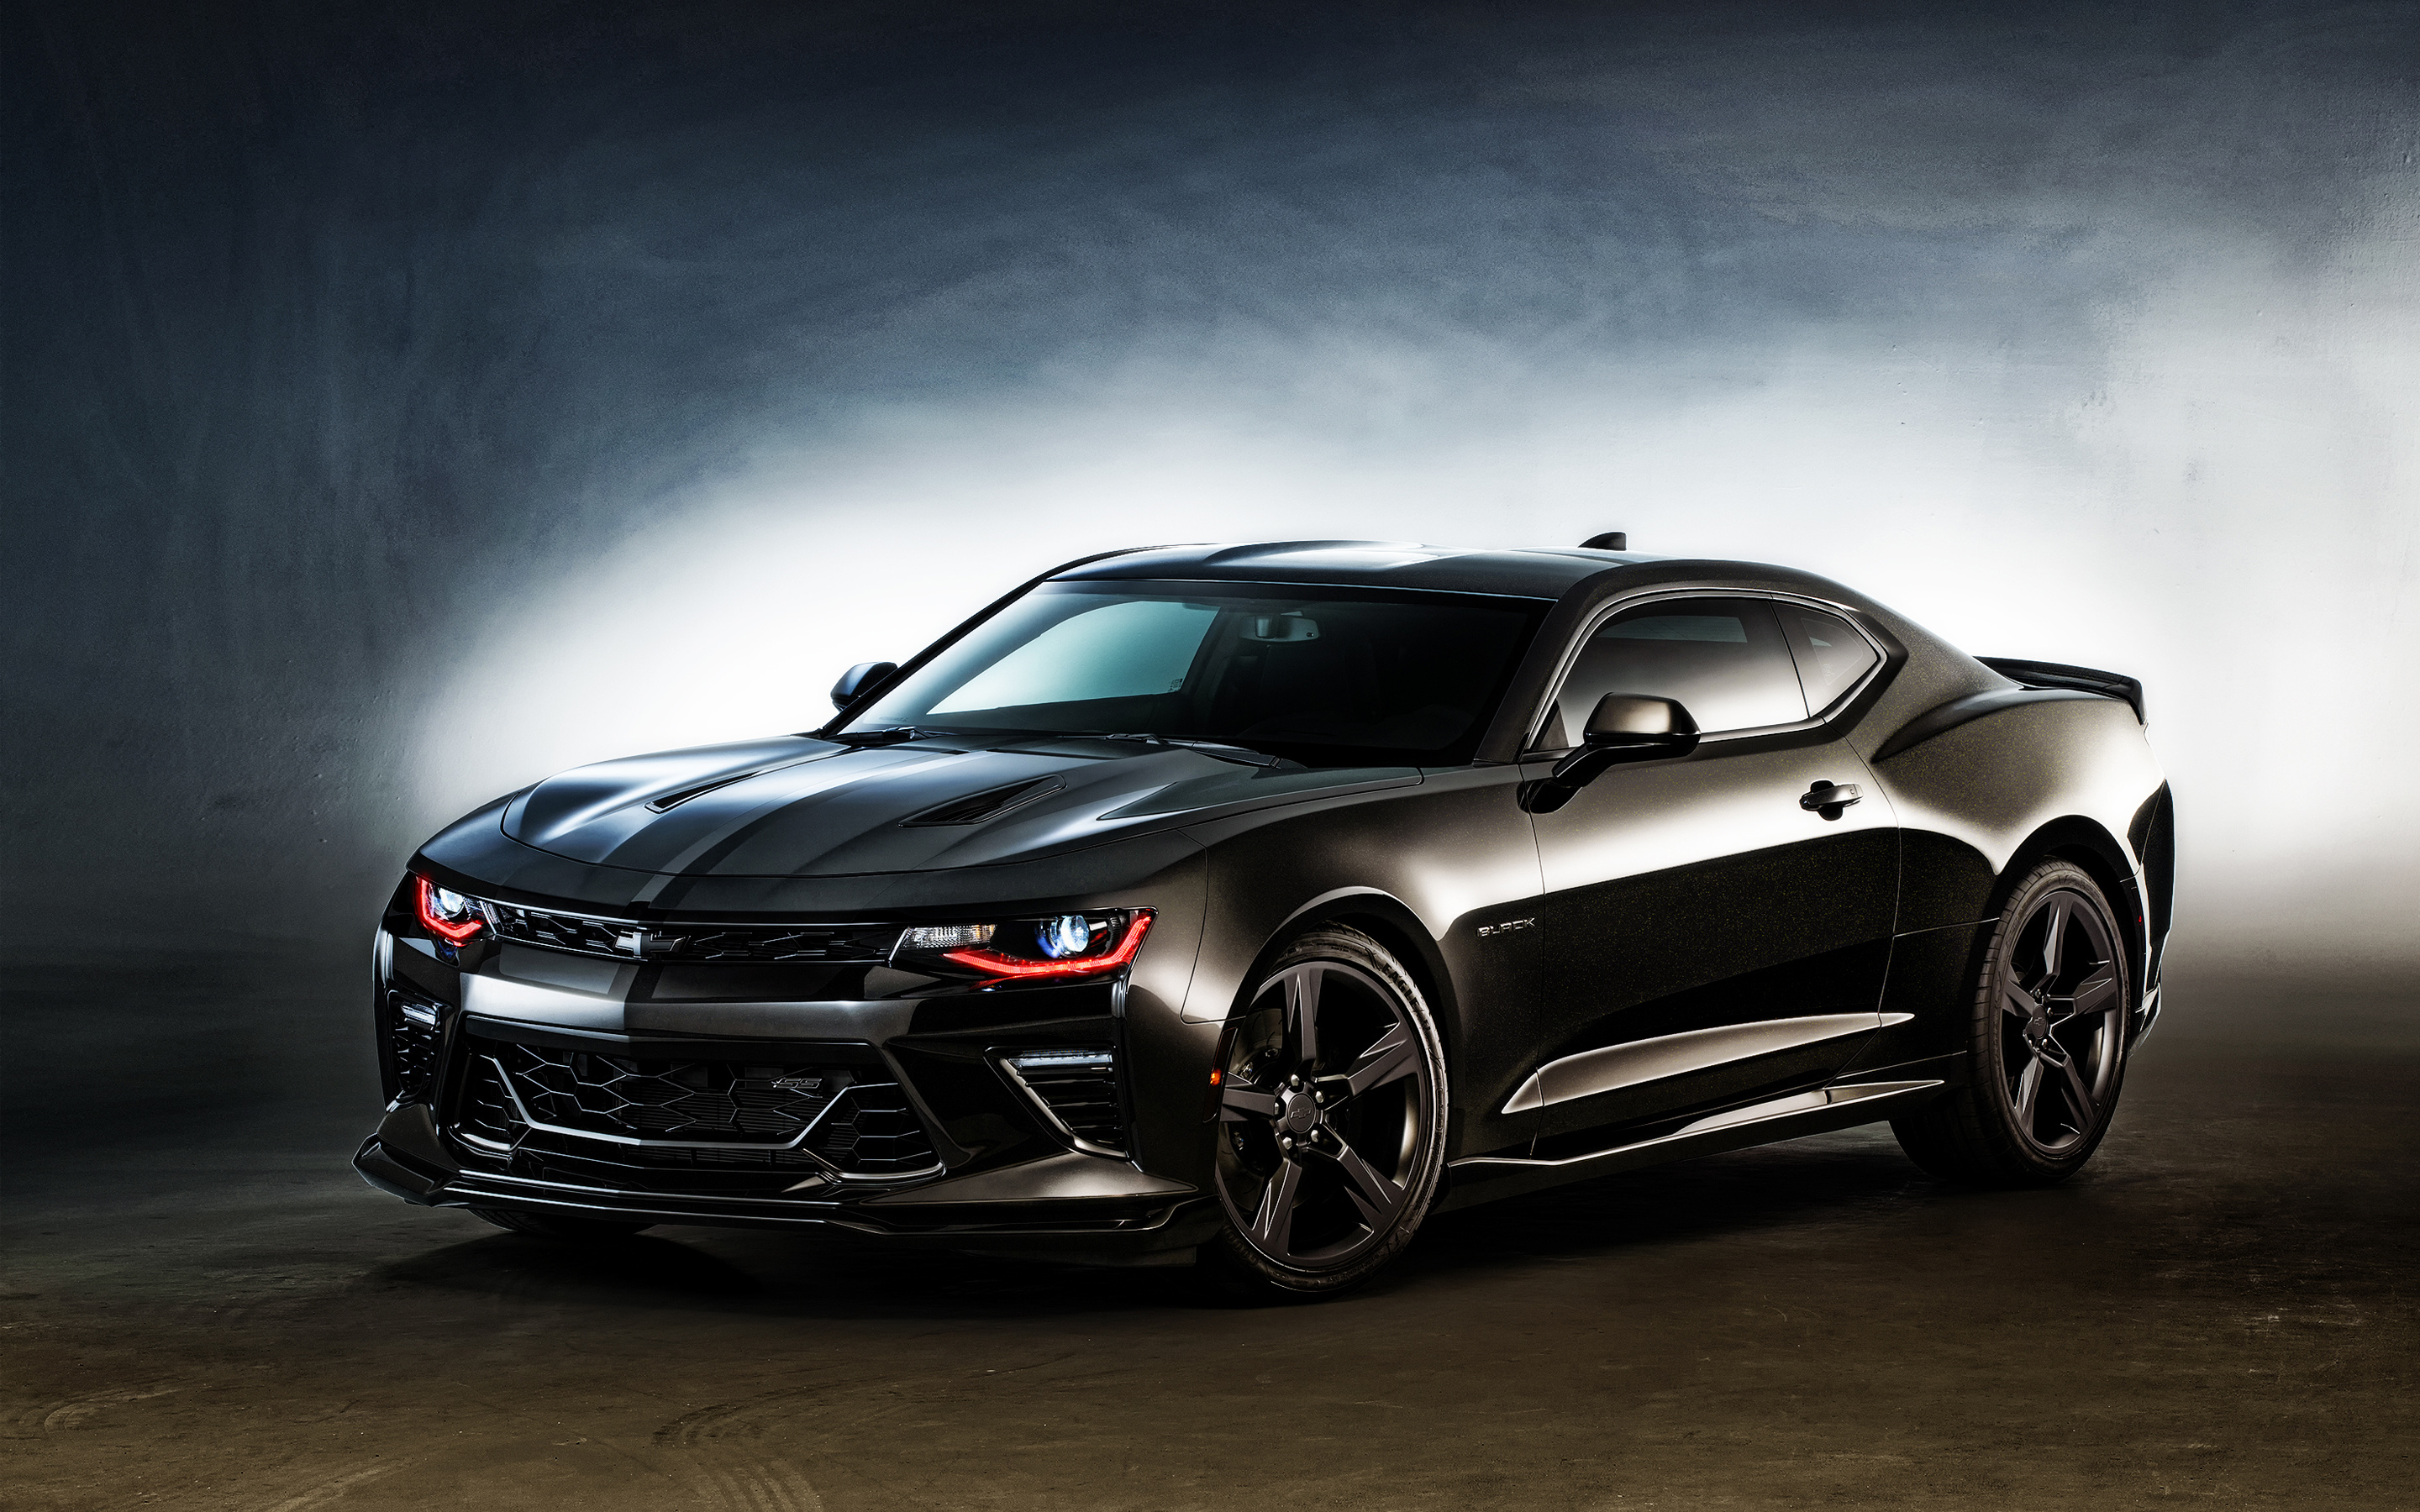 2016 Black Camaro Wallpaper Wallpapersafari